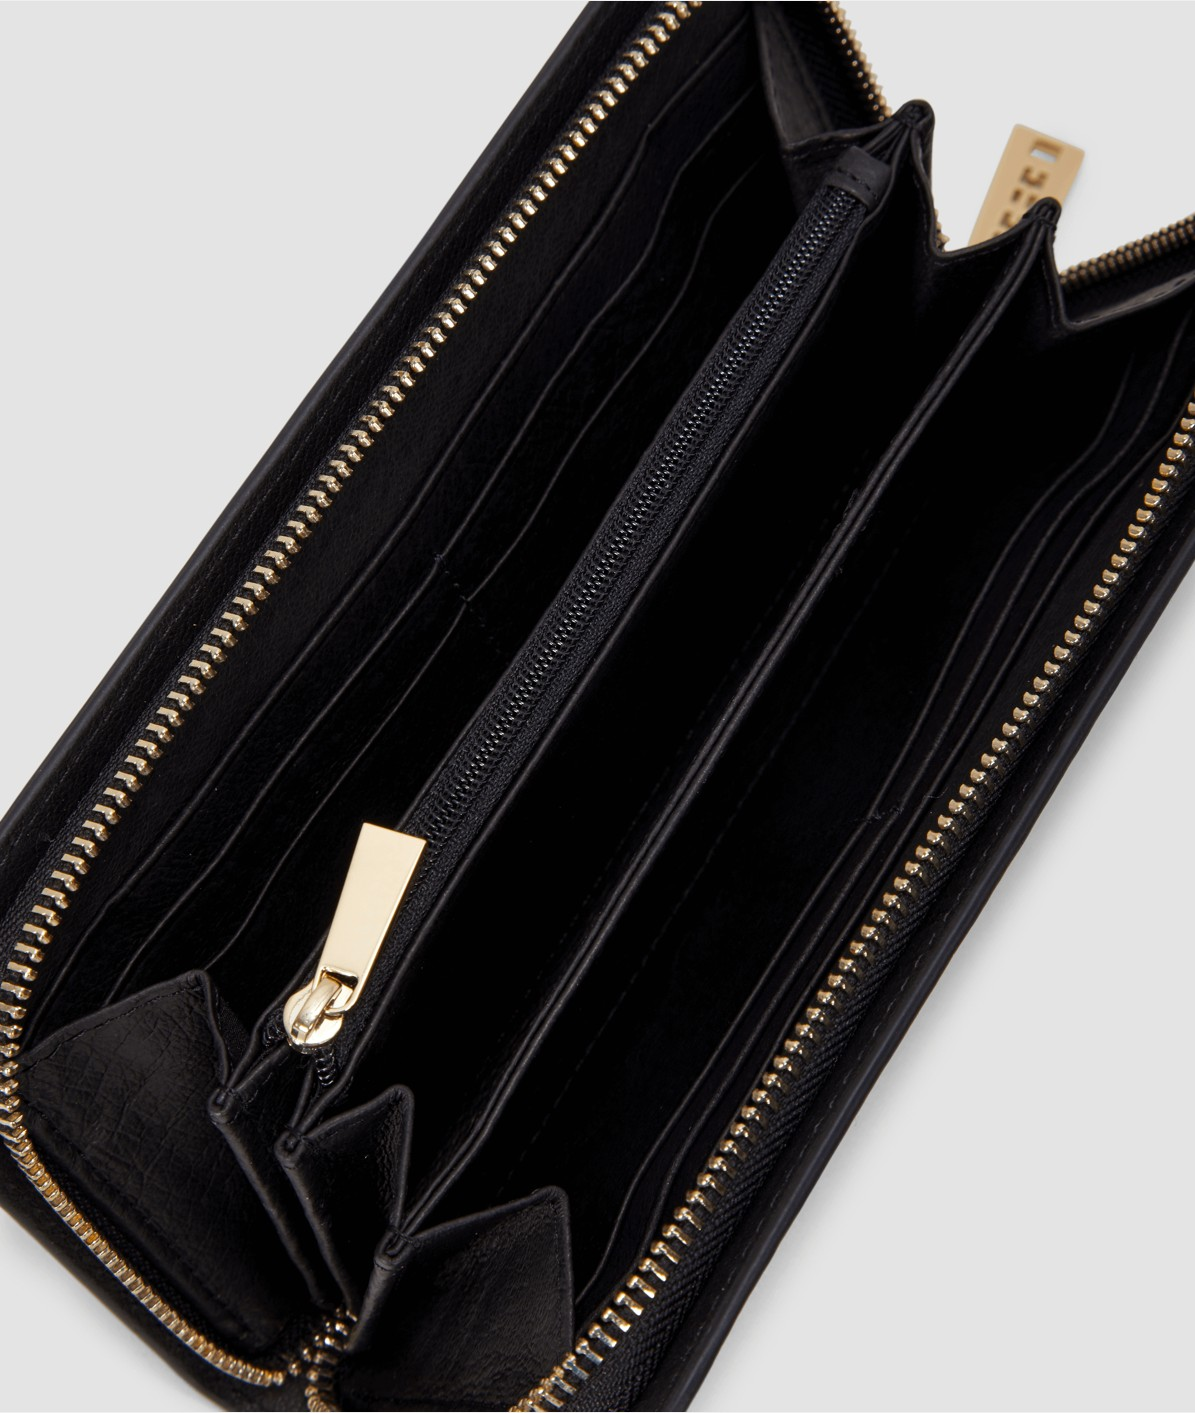 Patent purse from liebeskind